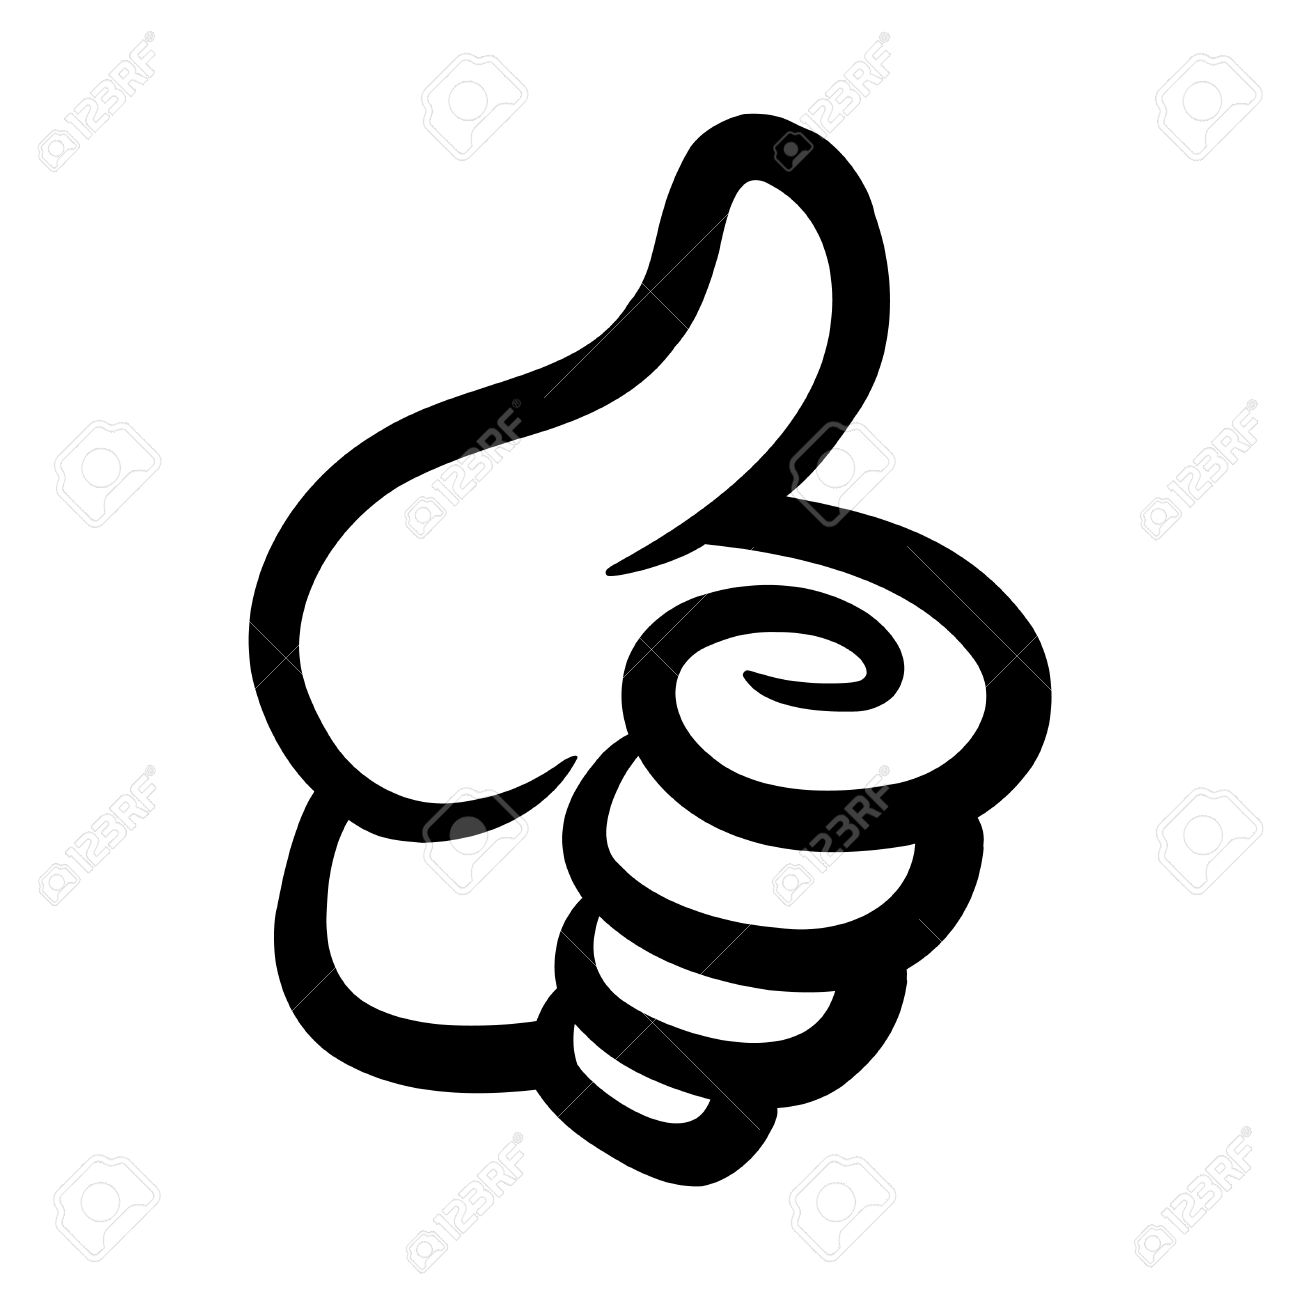 thumbs up vector icon royalty free cliparts vectors and stock rh 123rf com thumbs up vector free thumbs up vector png